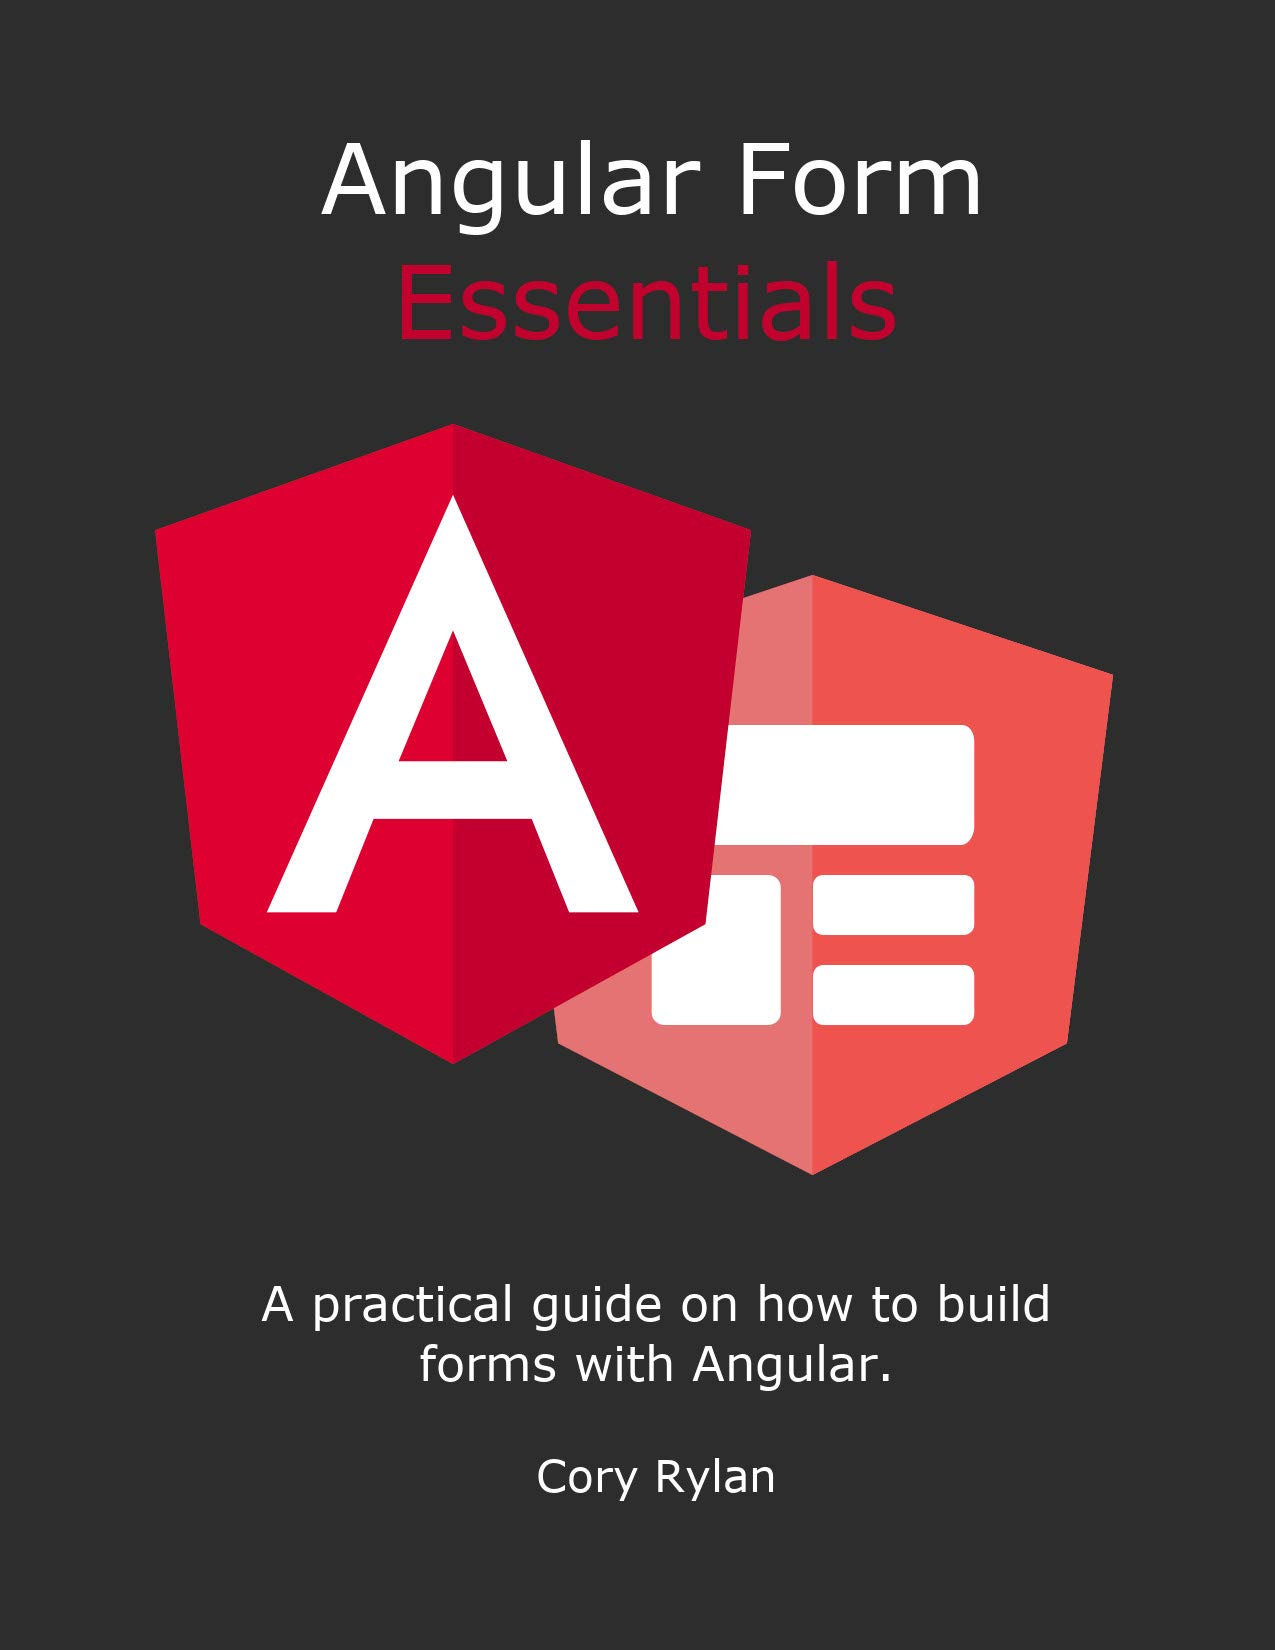 Angular Form Essentials: Learn the essentials to get started creating forms with Angular!